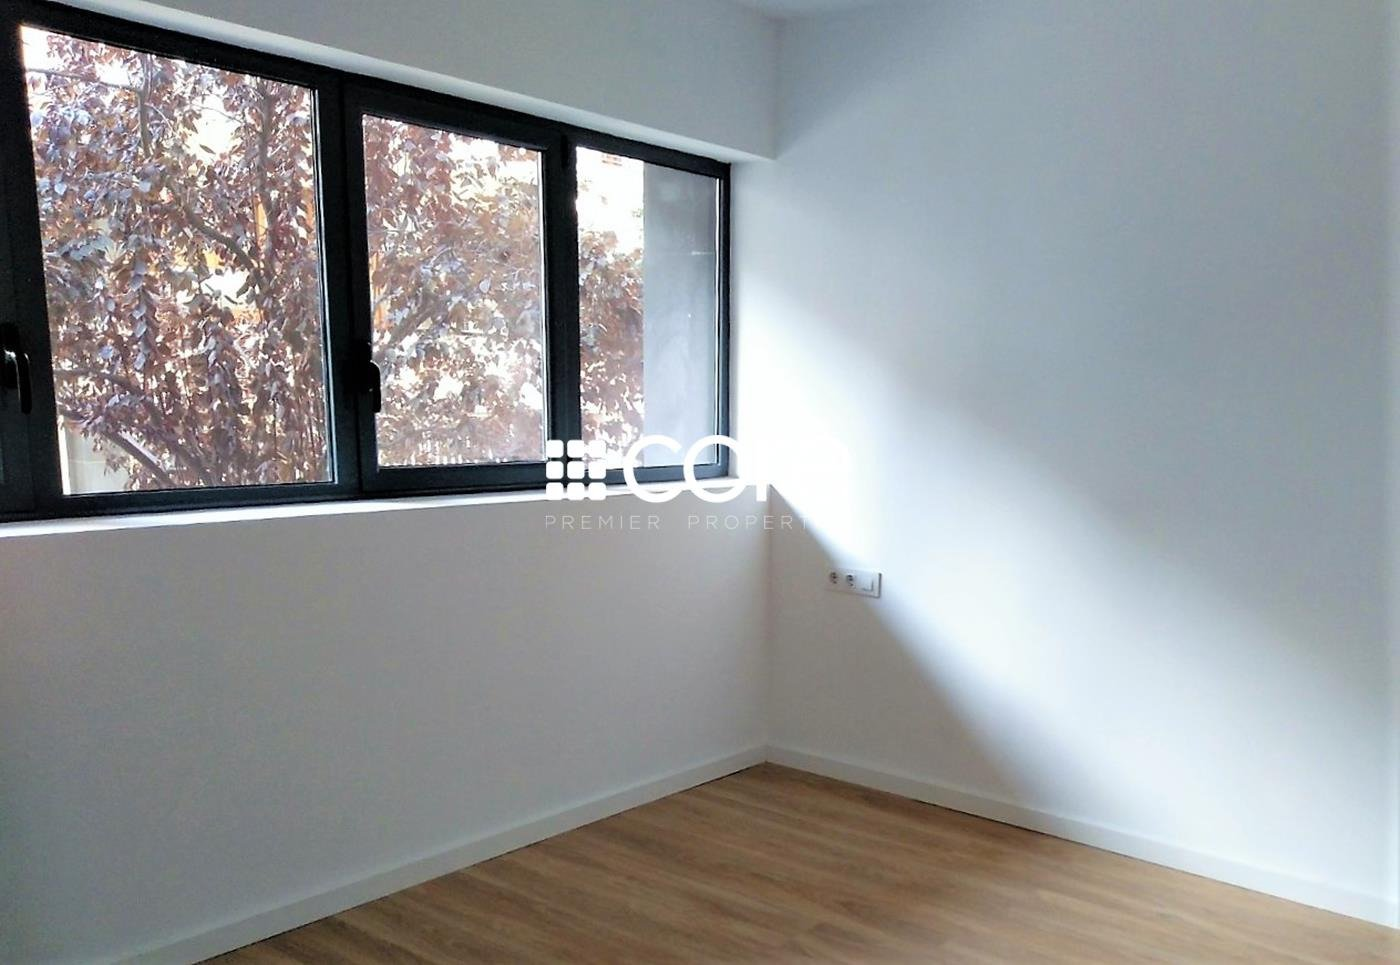 Apartment for sale renovated in Sarrià, Barcelona